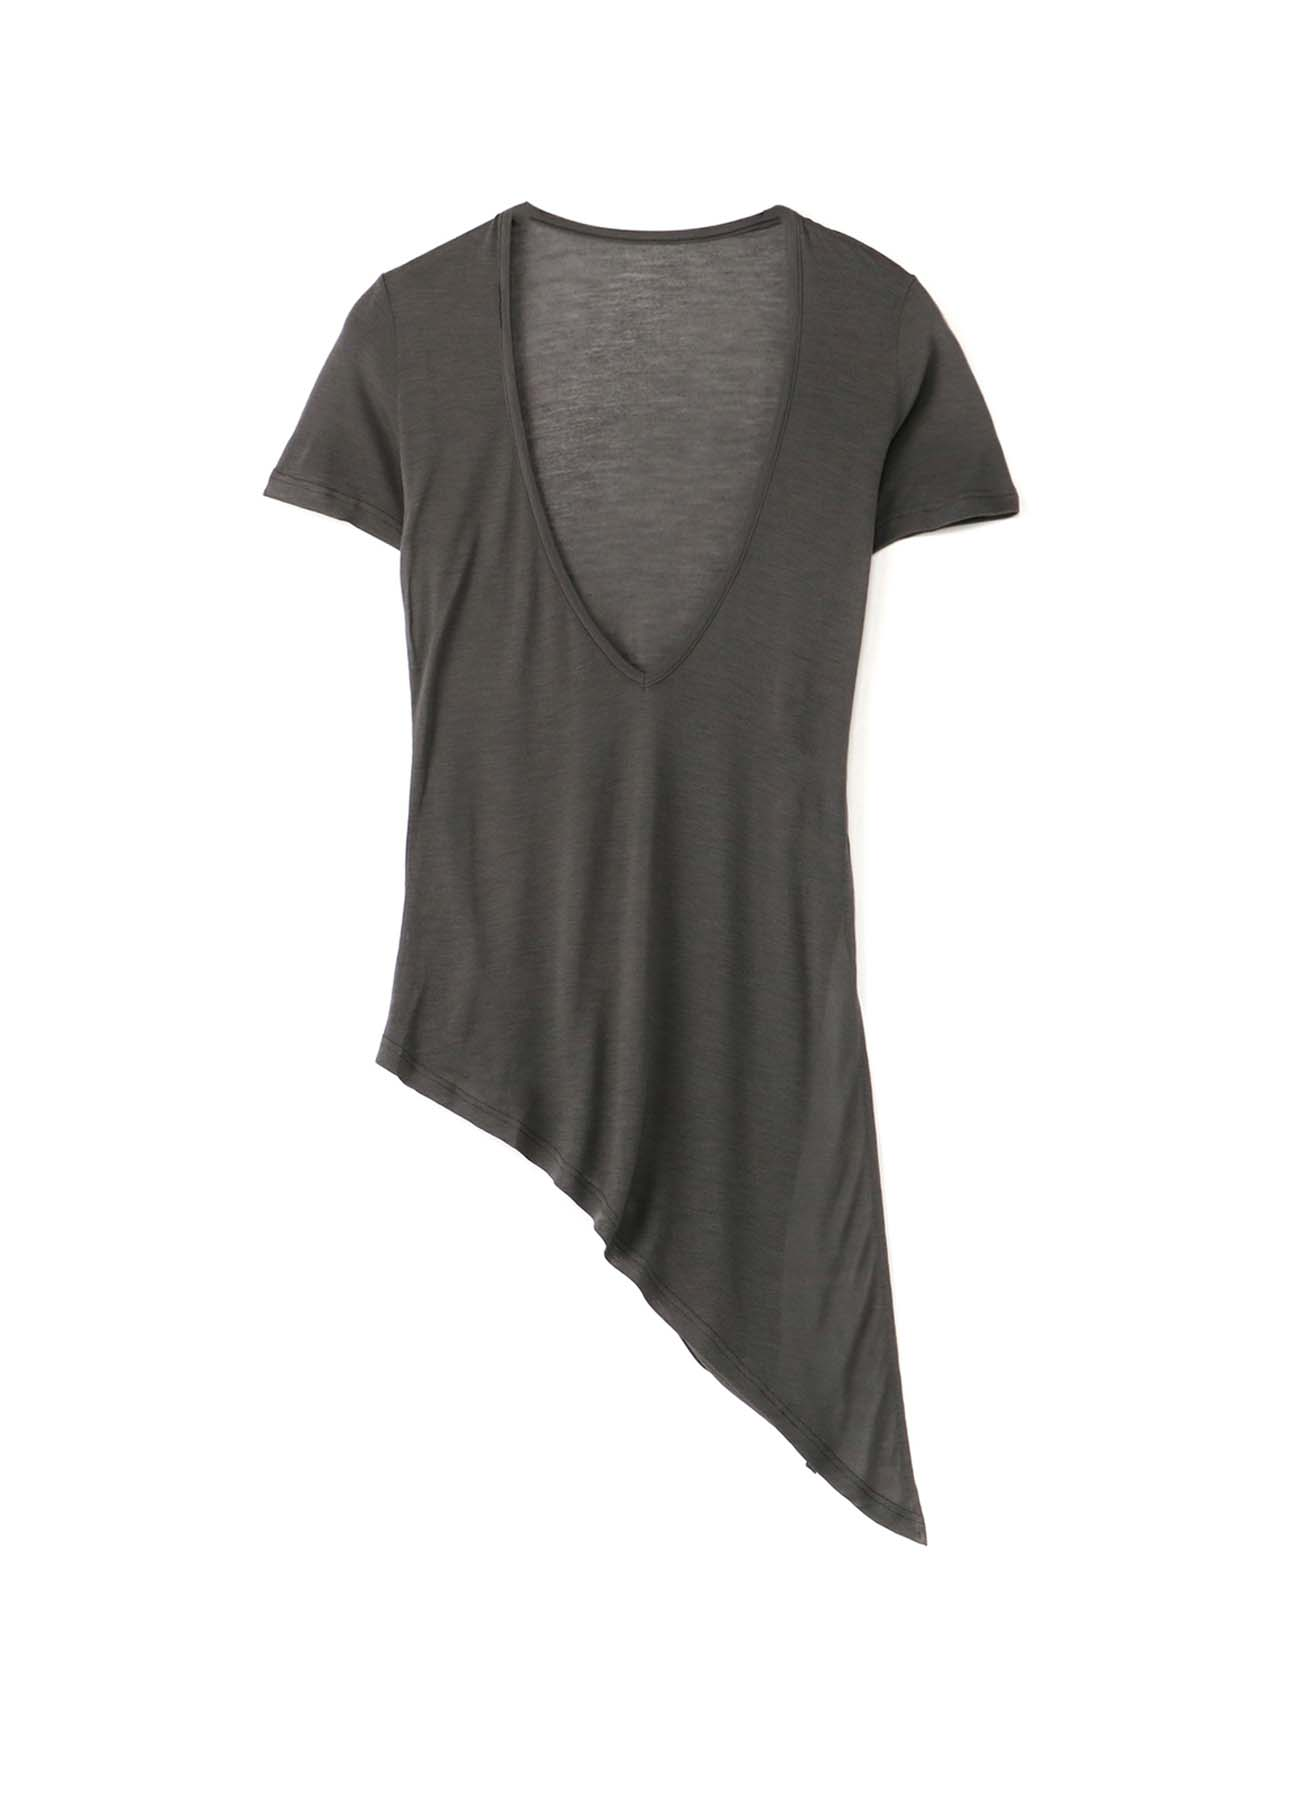 Ry/Si Plain Stitch V-Neck Asymmetry T